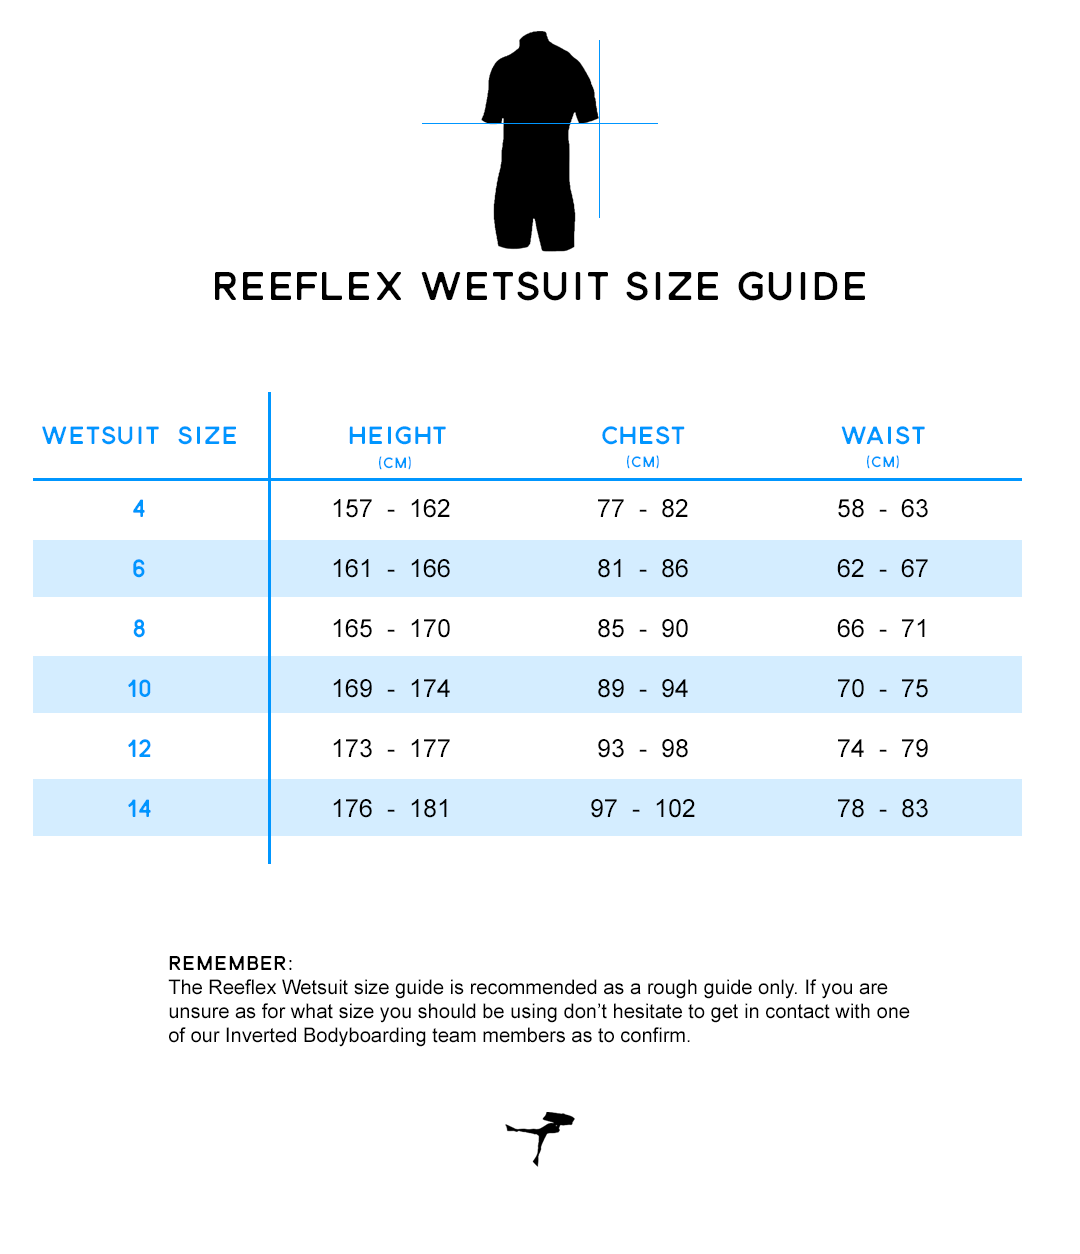 Reeflex Womens Size Guide at Inverted Bodyboarding